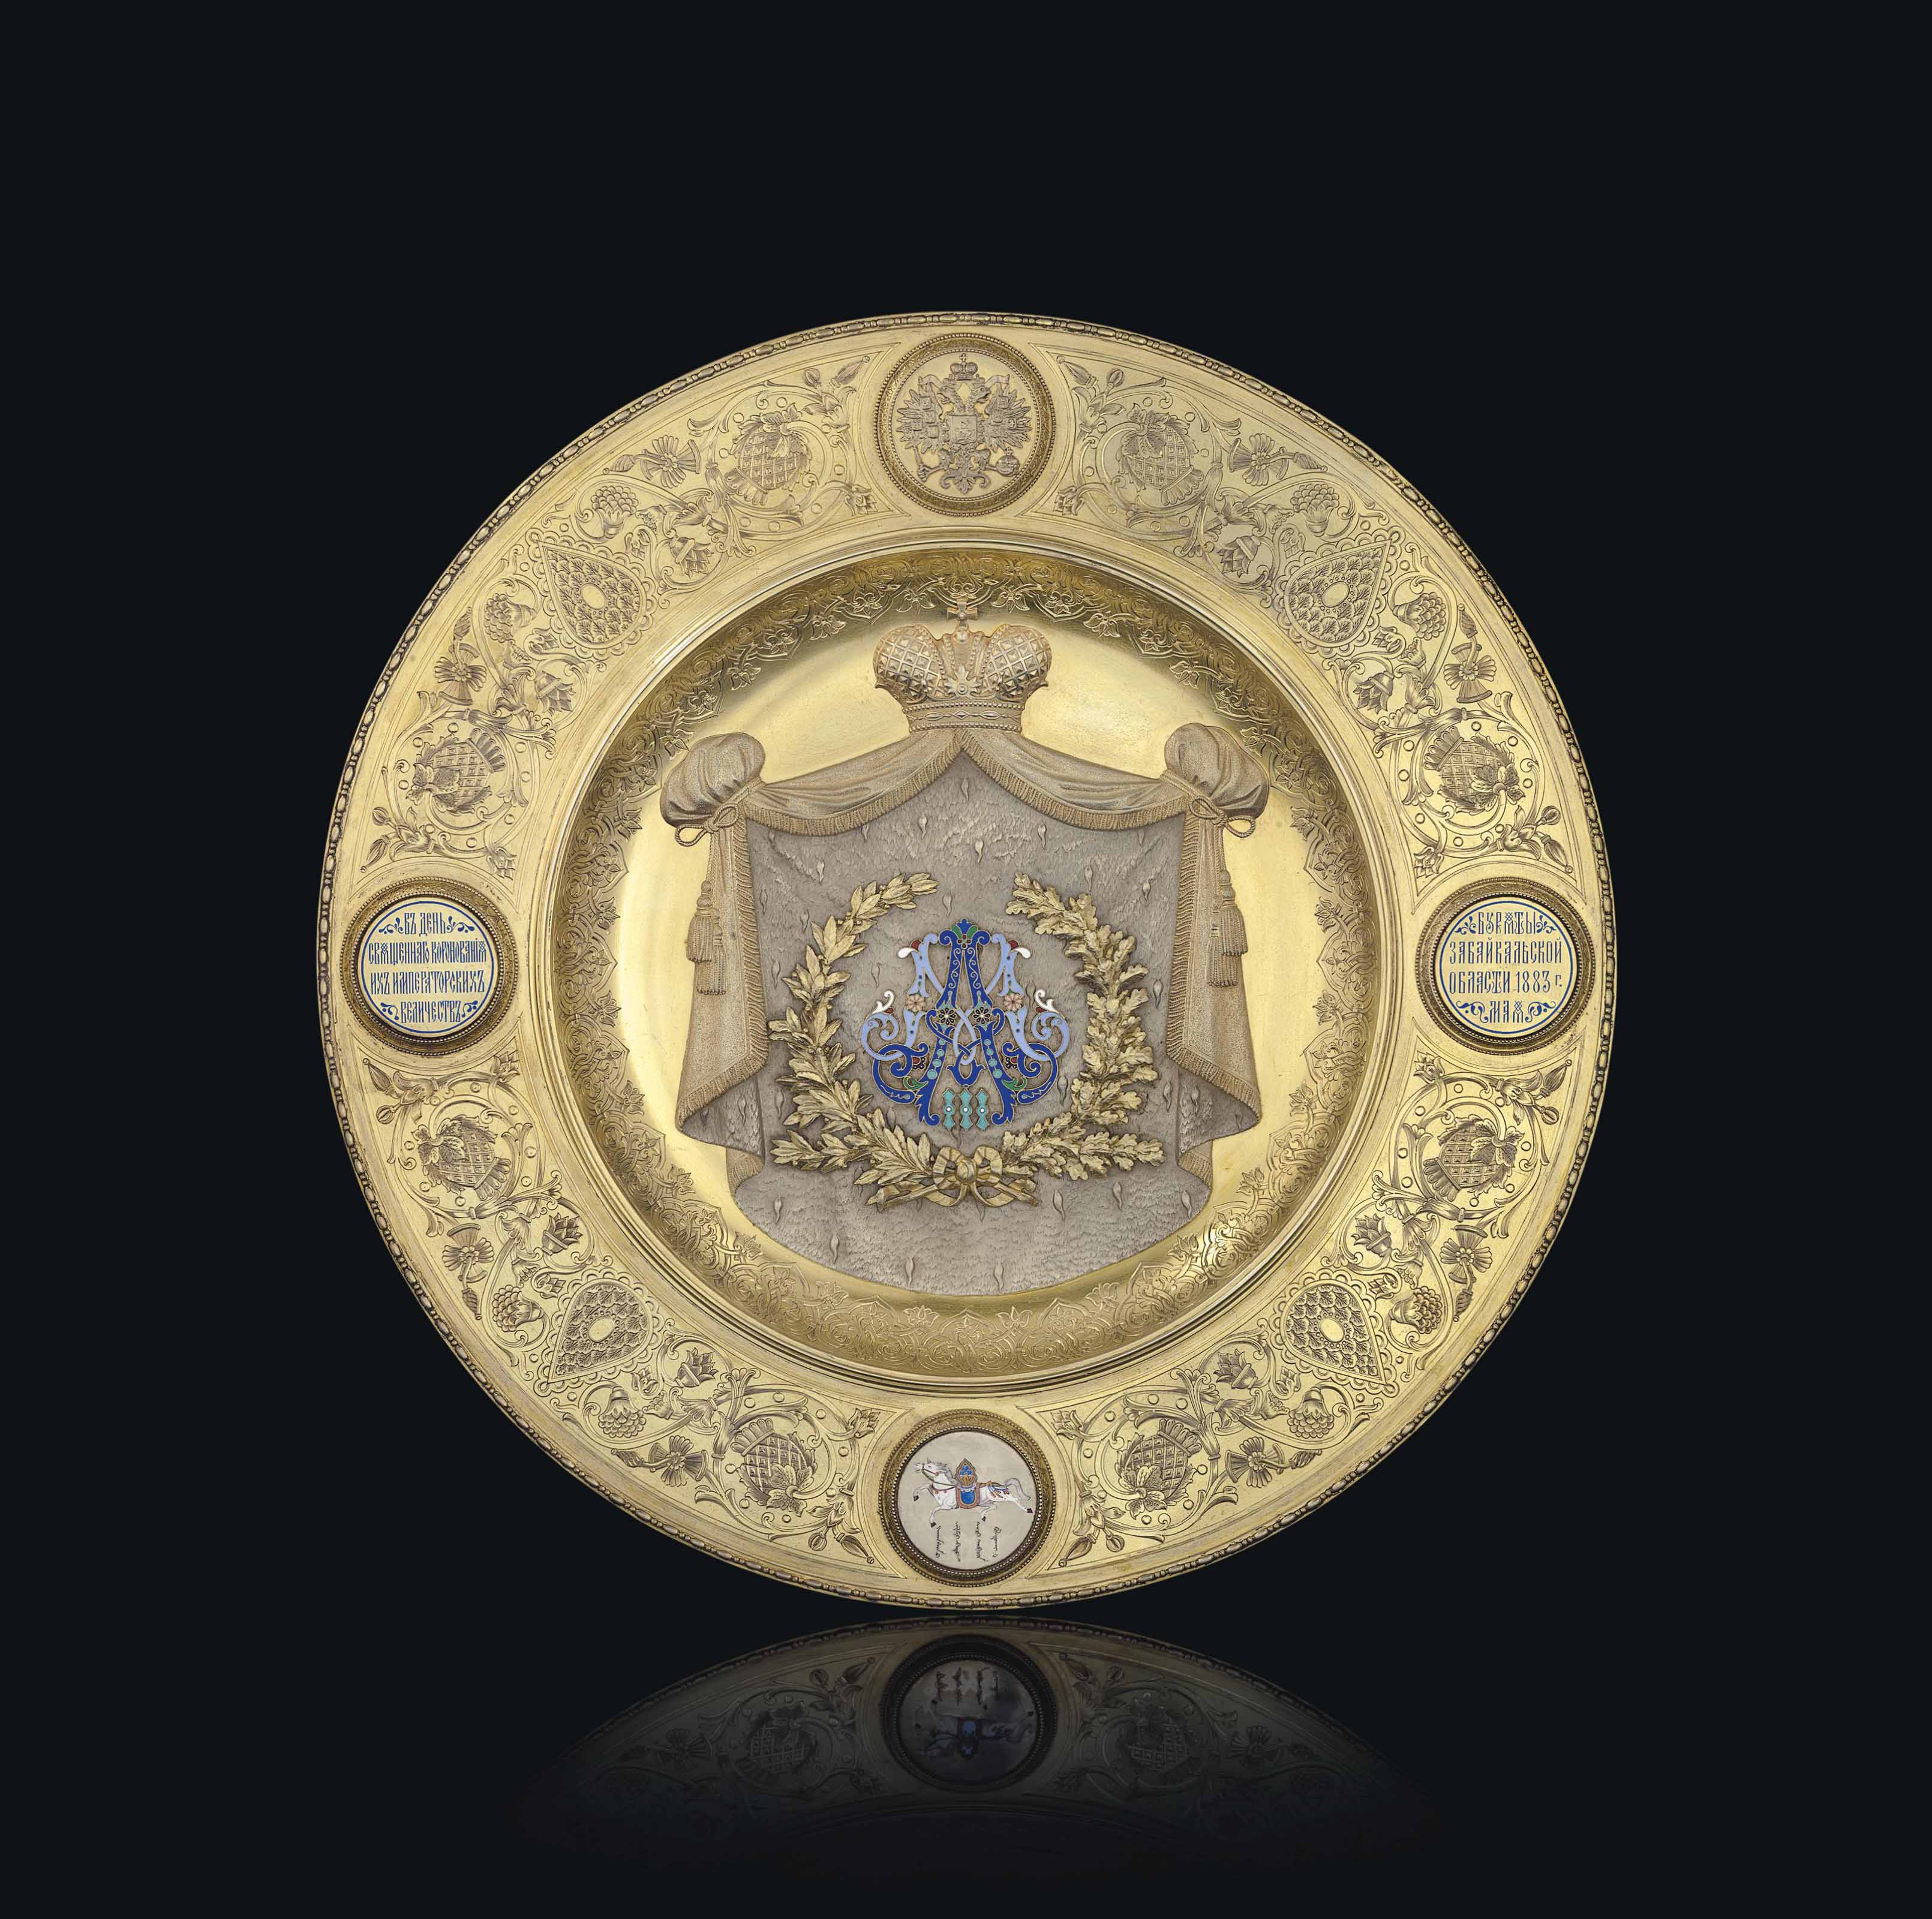 A RARE AND IMPORTANT PARCEL-GILT SILVER AND ENAMEL IMPERIAL PRESENTATION CHARGER FOR THE CORONATION OF EMPEROR ALEXANDER III AND EMPRESS MARIA FEODOROVNA